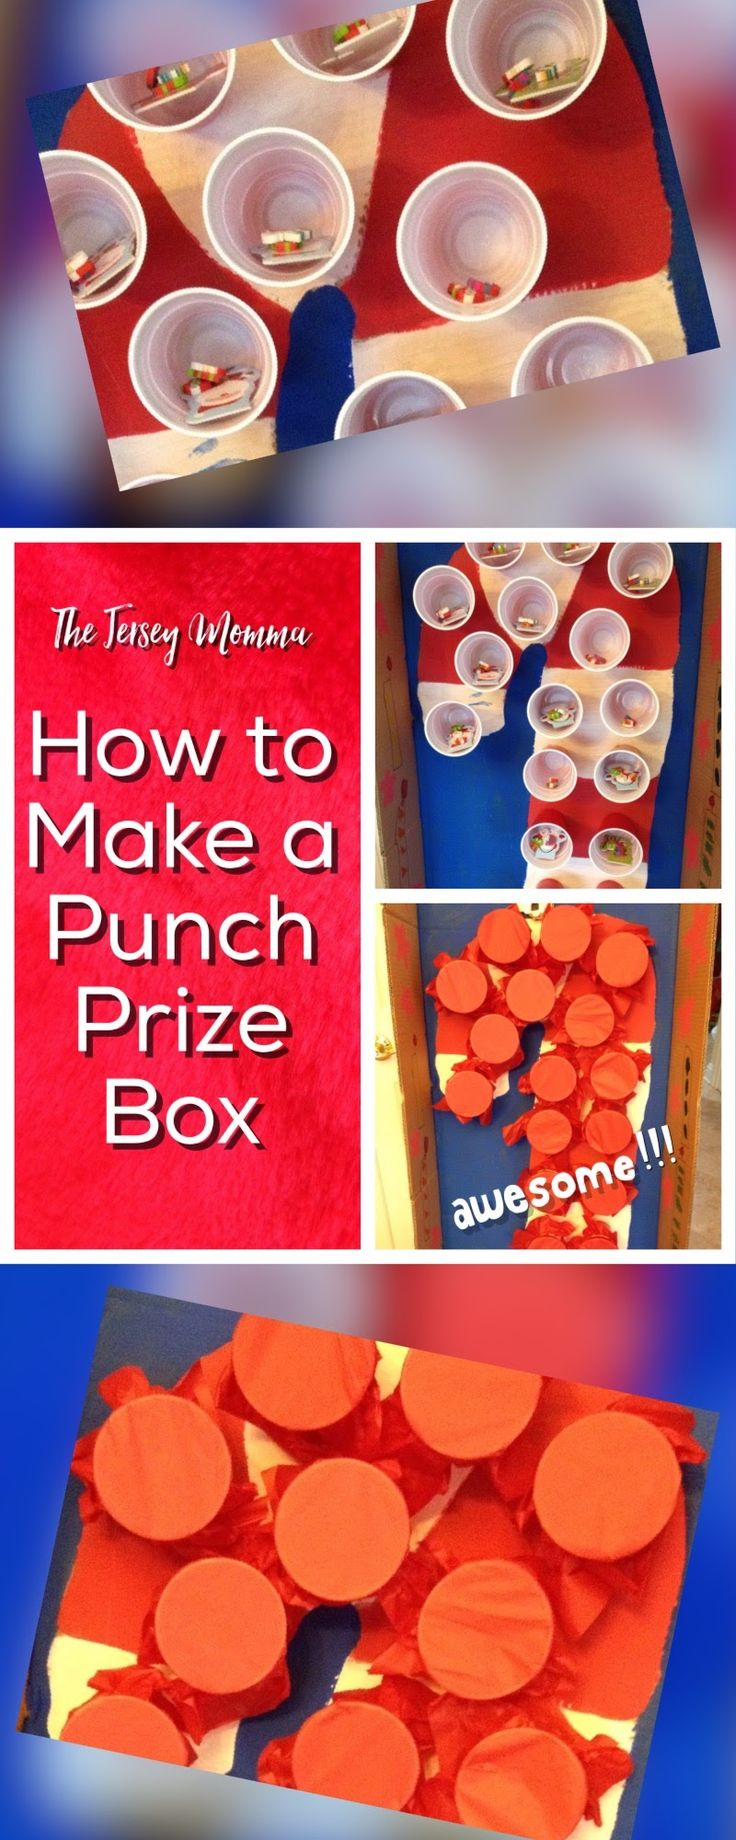 DIY Punch Prize Box for parties. Easy punch prize boxes for parties!